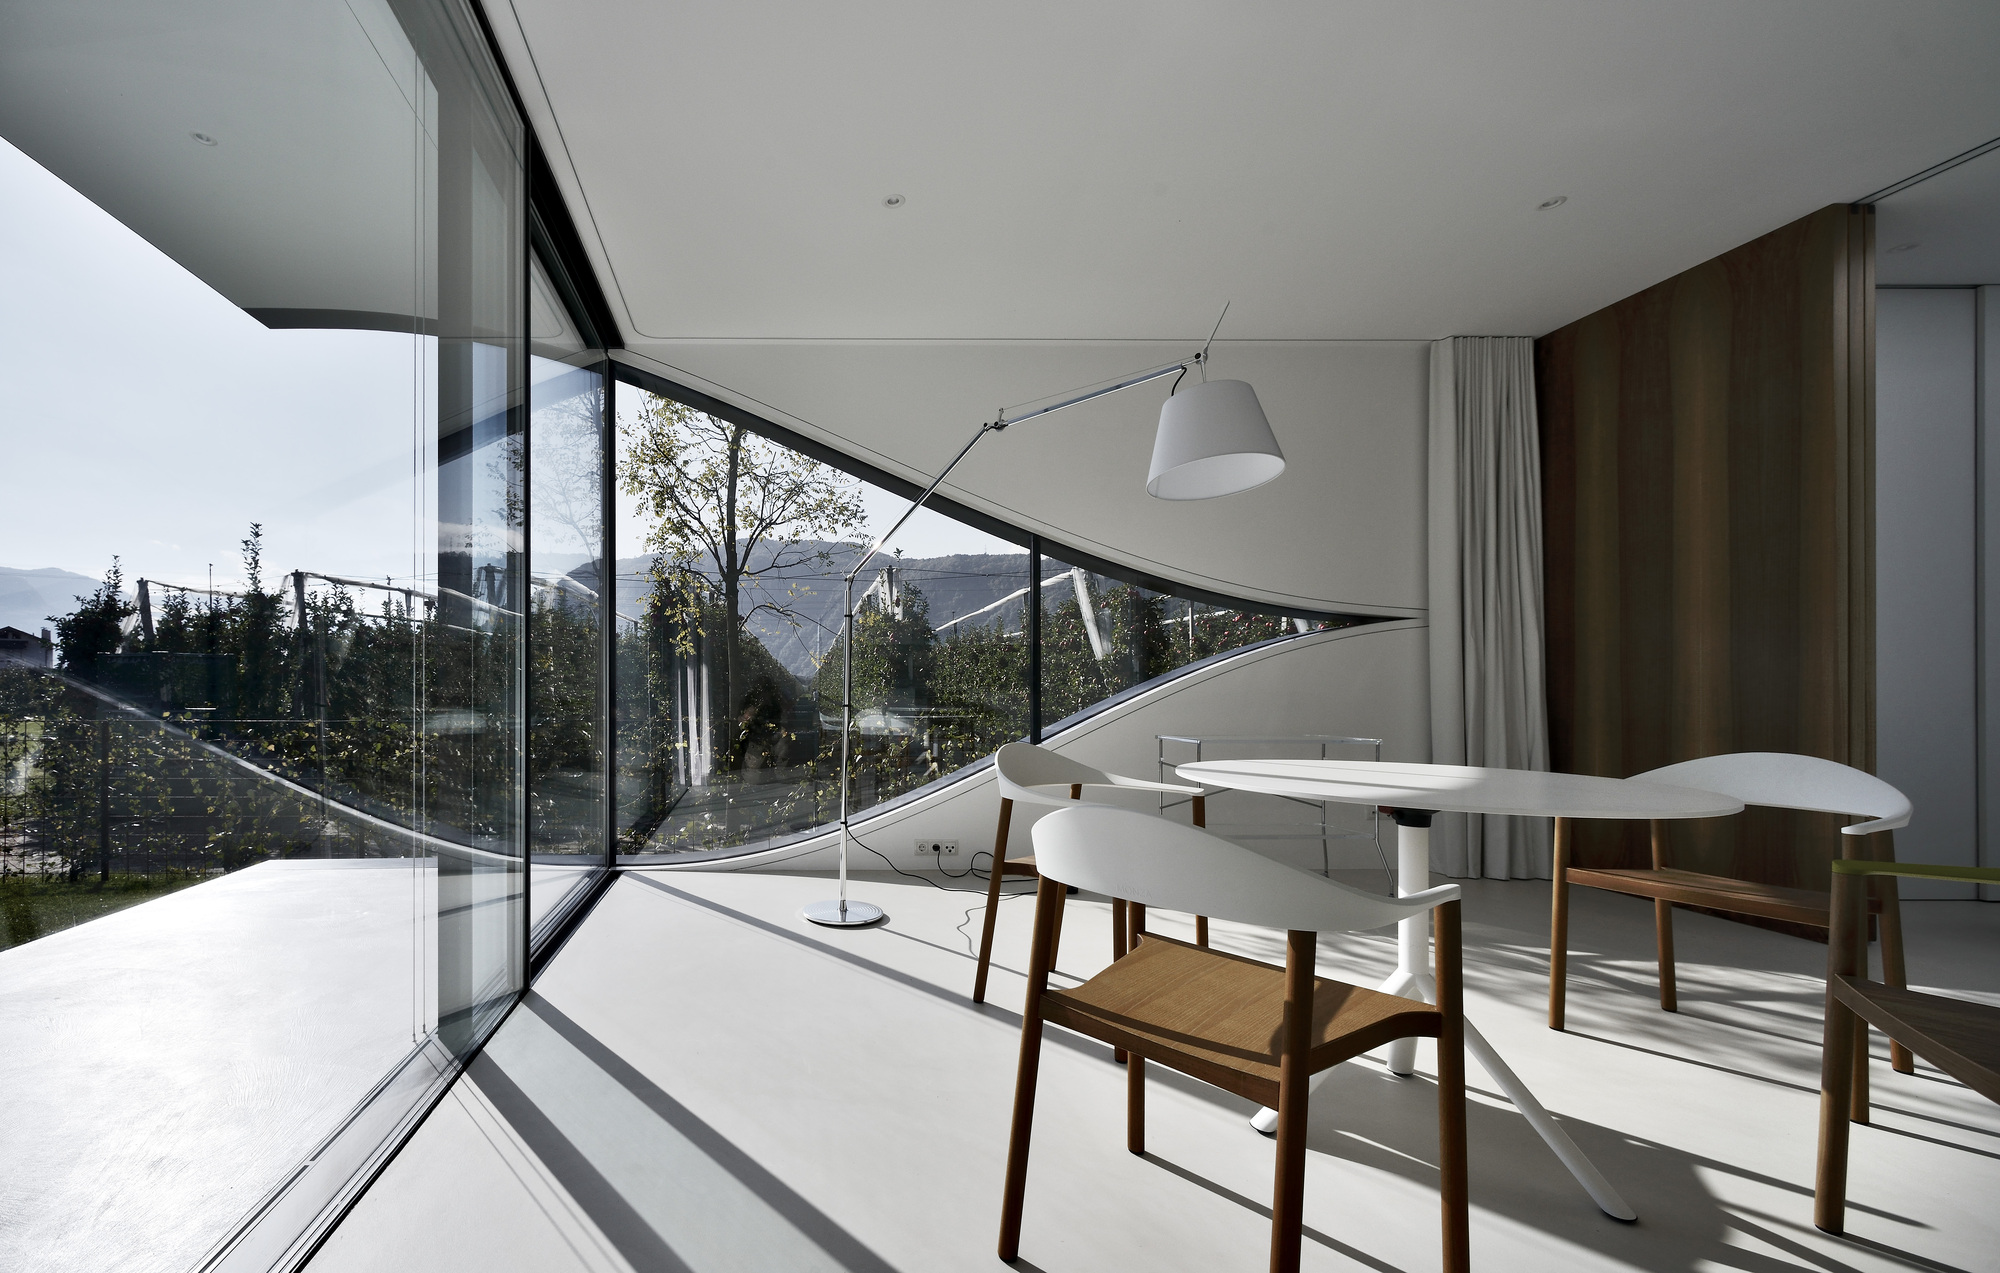 The Mirror Houses / Peter Pichler Architecture (11)